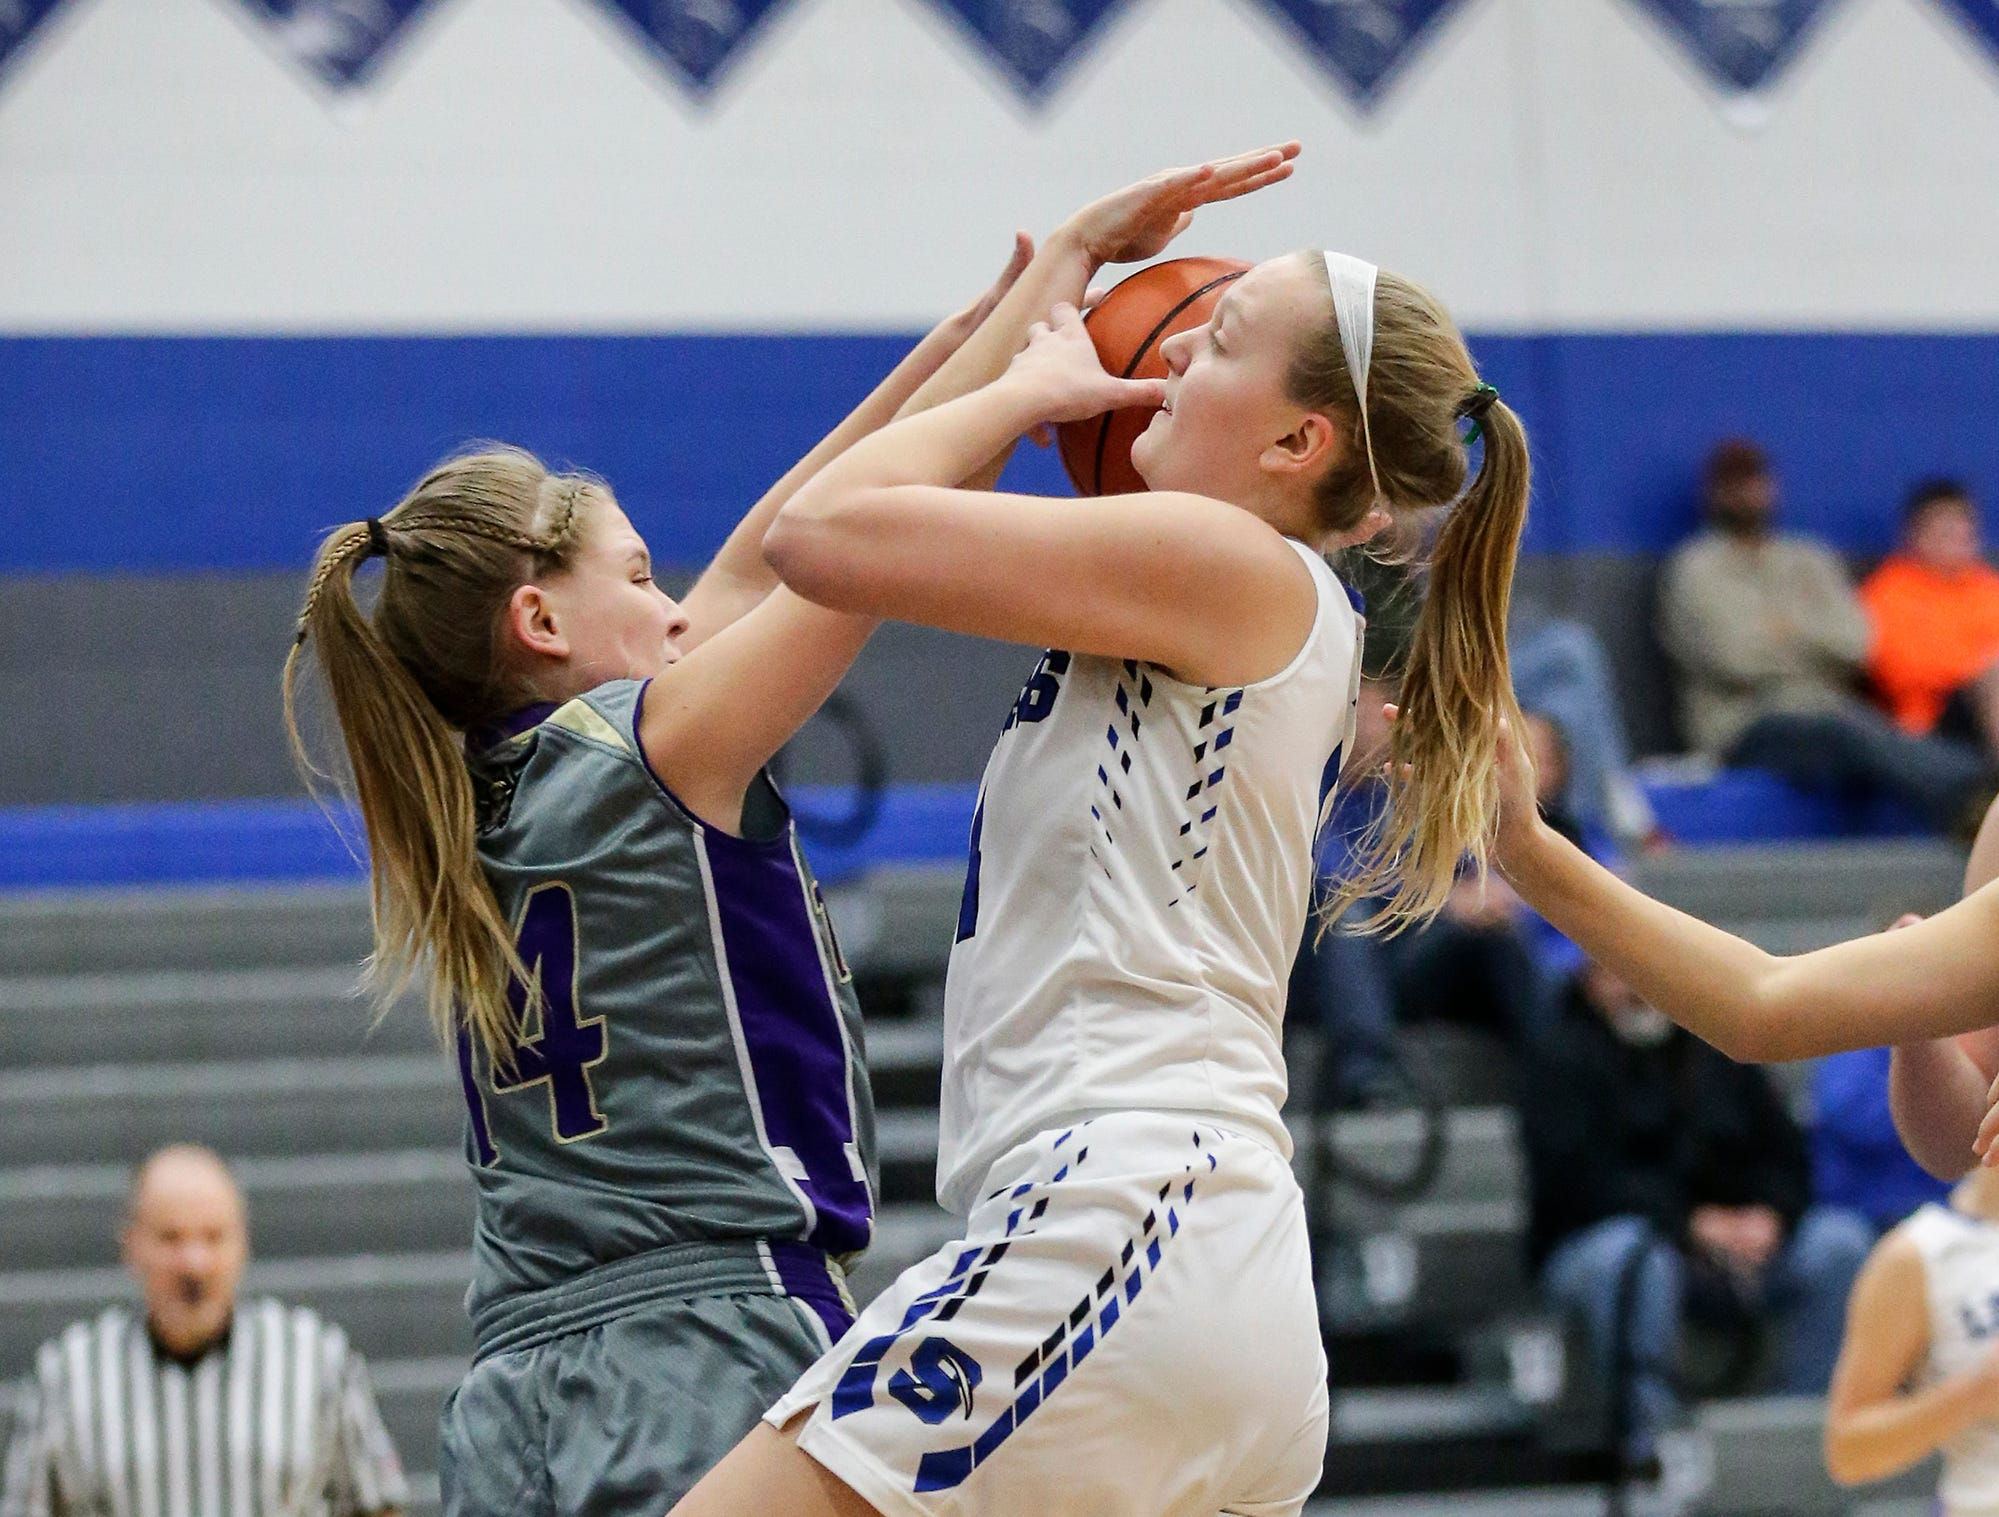 St. Mary's Springs girls basketball's Brianna Freund gets fouled by Two Rivers High School's Andrea Henrickson during their game Friday, November 16, 2018 in Fond du Lac. Doug Raflik/USA TODAY NETWORK-Wisconsin